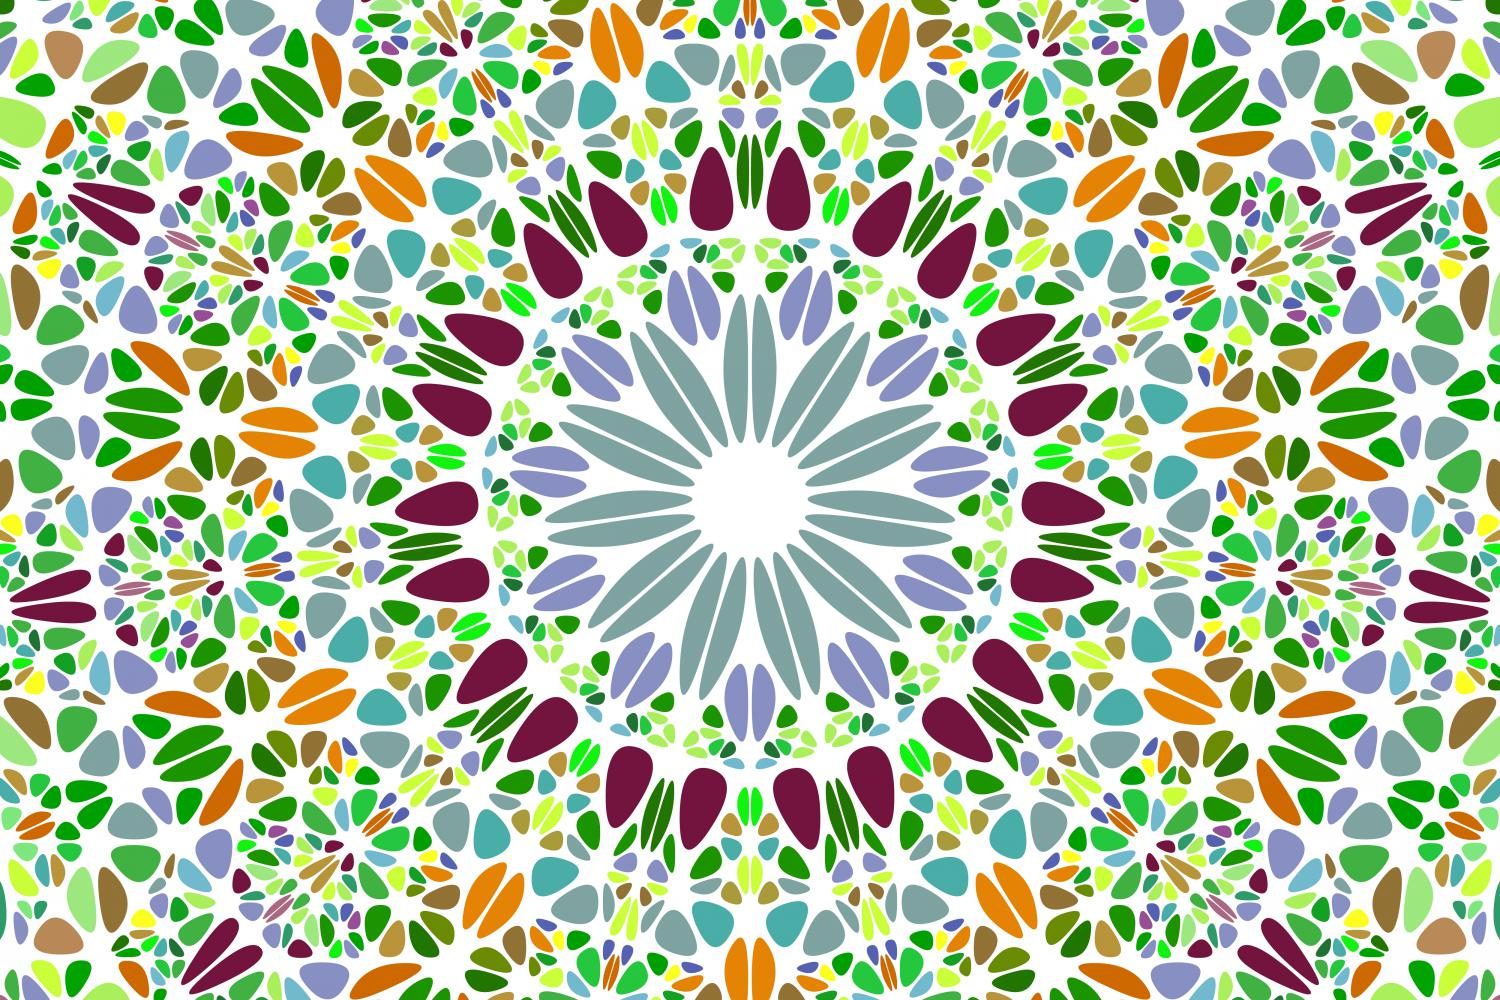 48 Floral Mandala Backgrounds example image 17